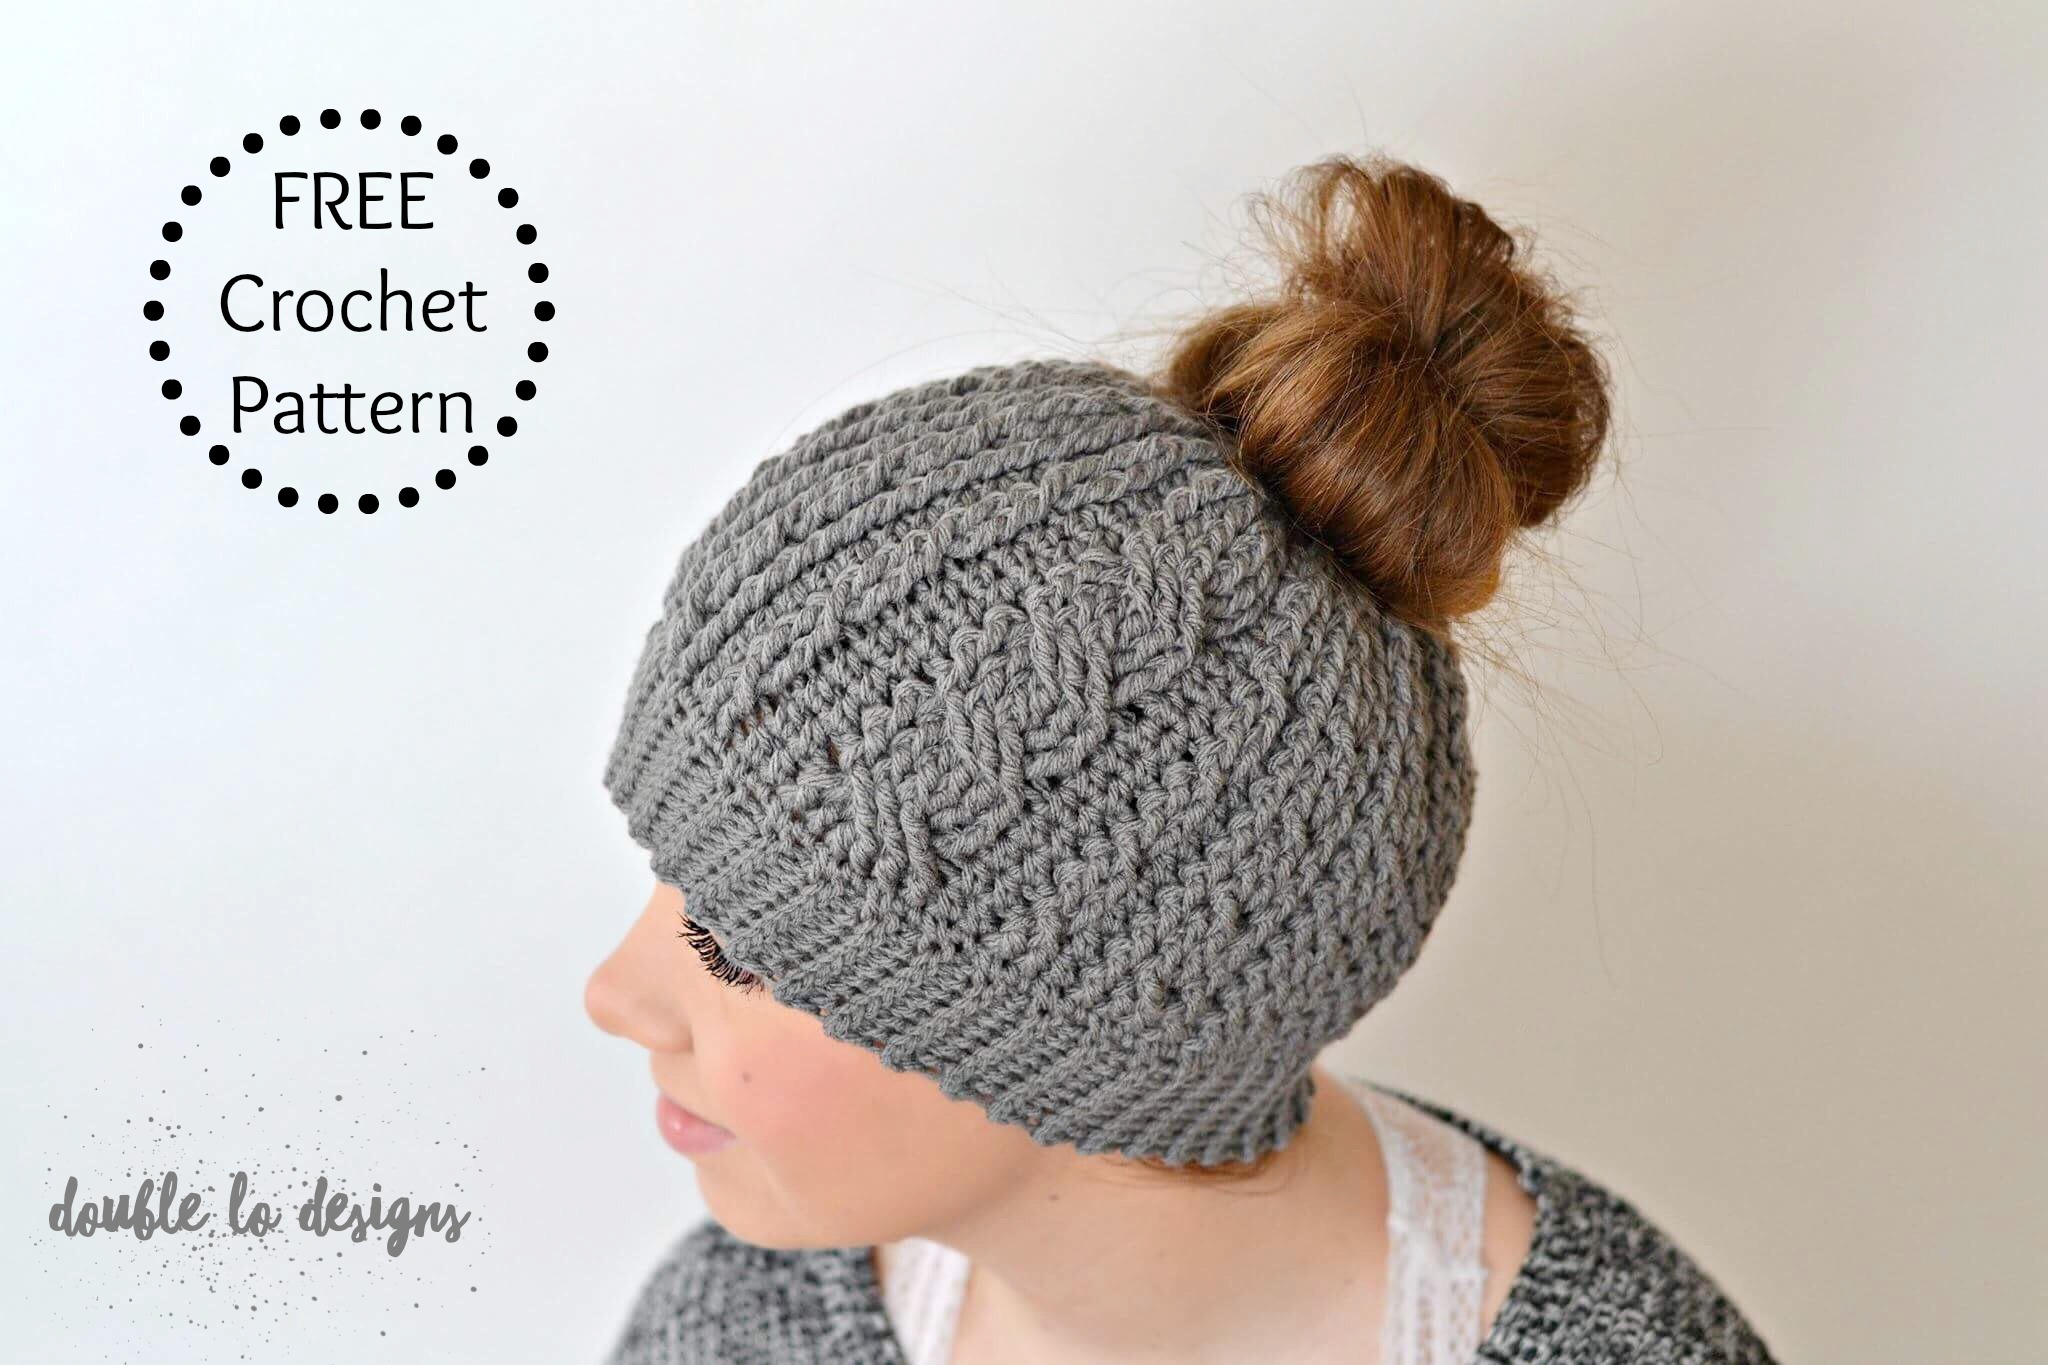 f6616b5ac7d1c Free Crochet Pattern – Crochet Cabled Messy Bun Hat (Adult Sizes) (video  tutorial included)